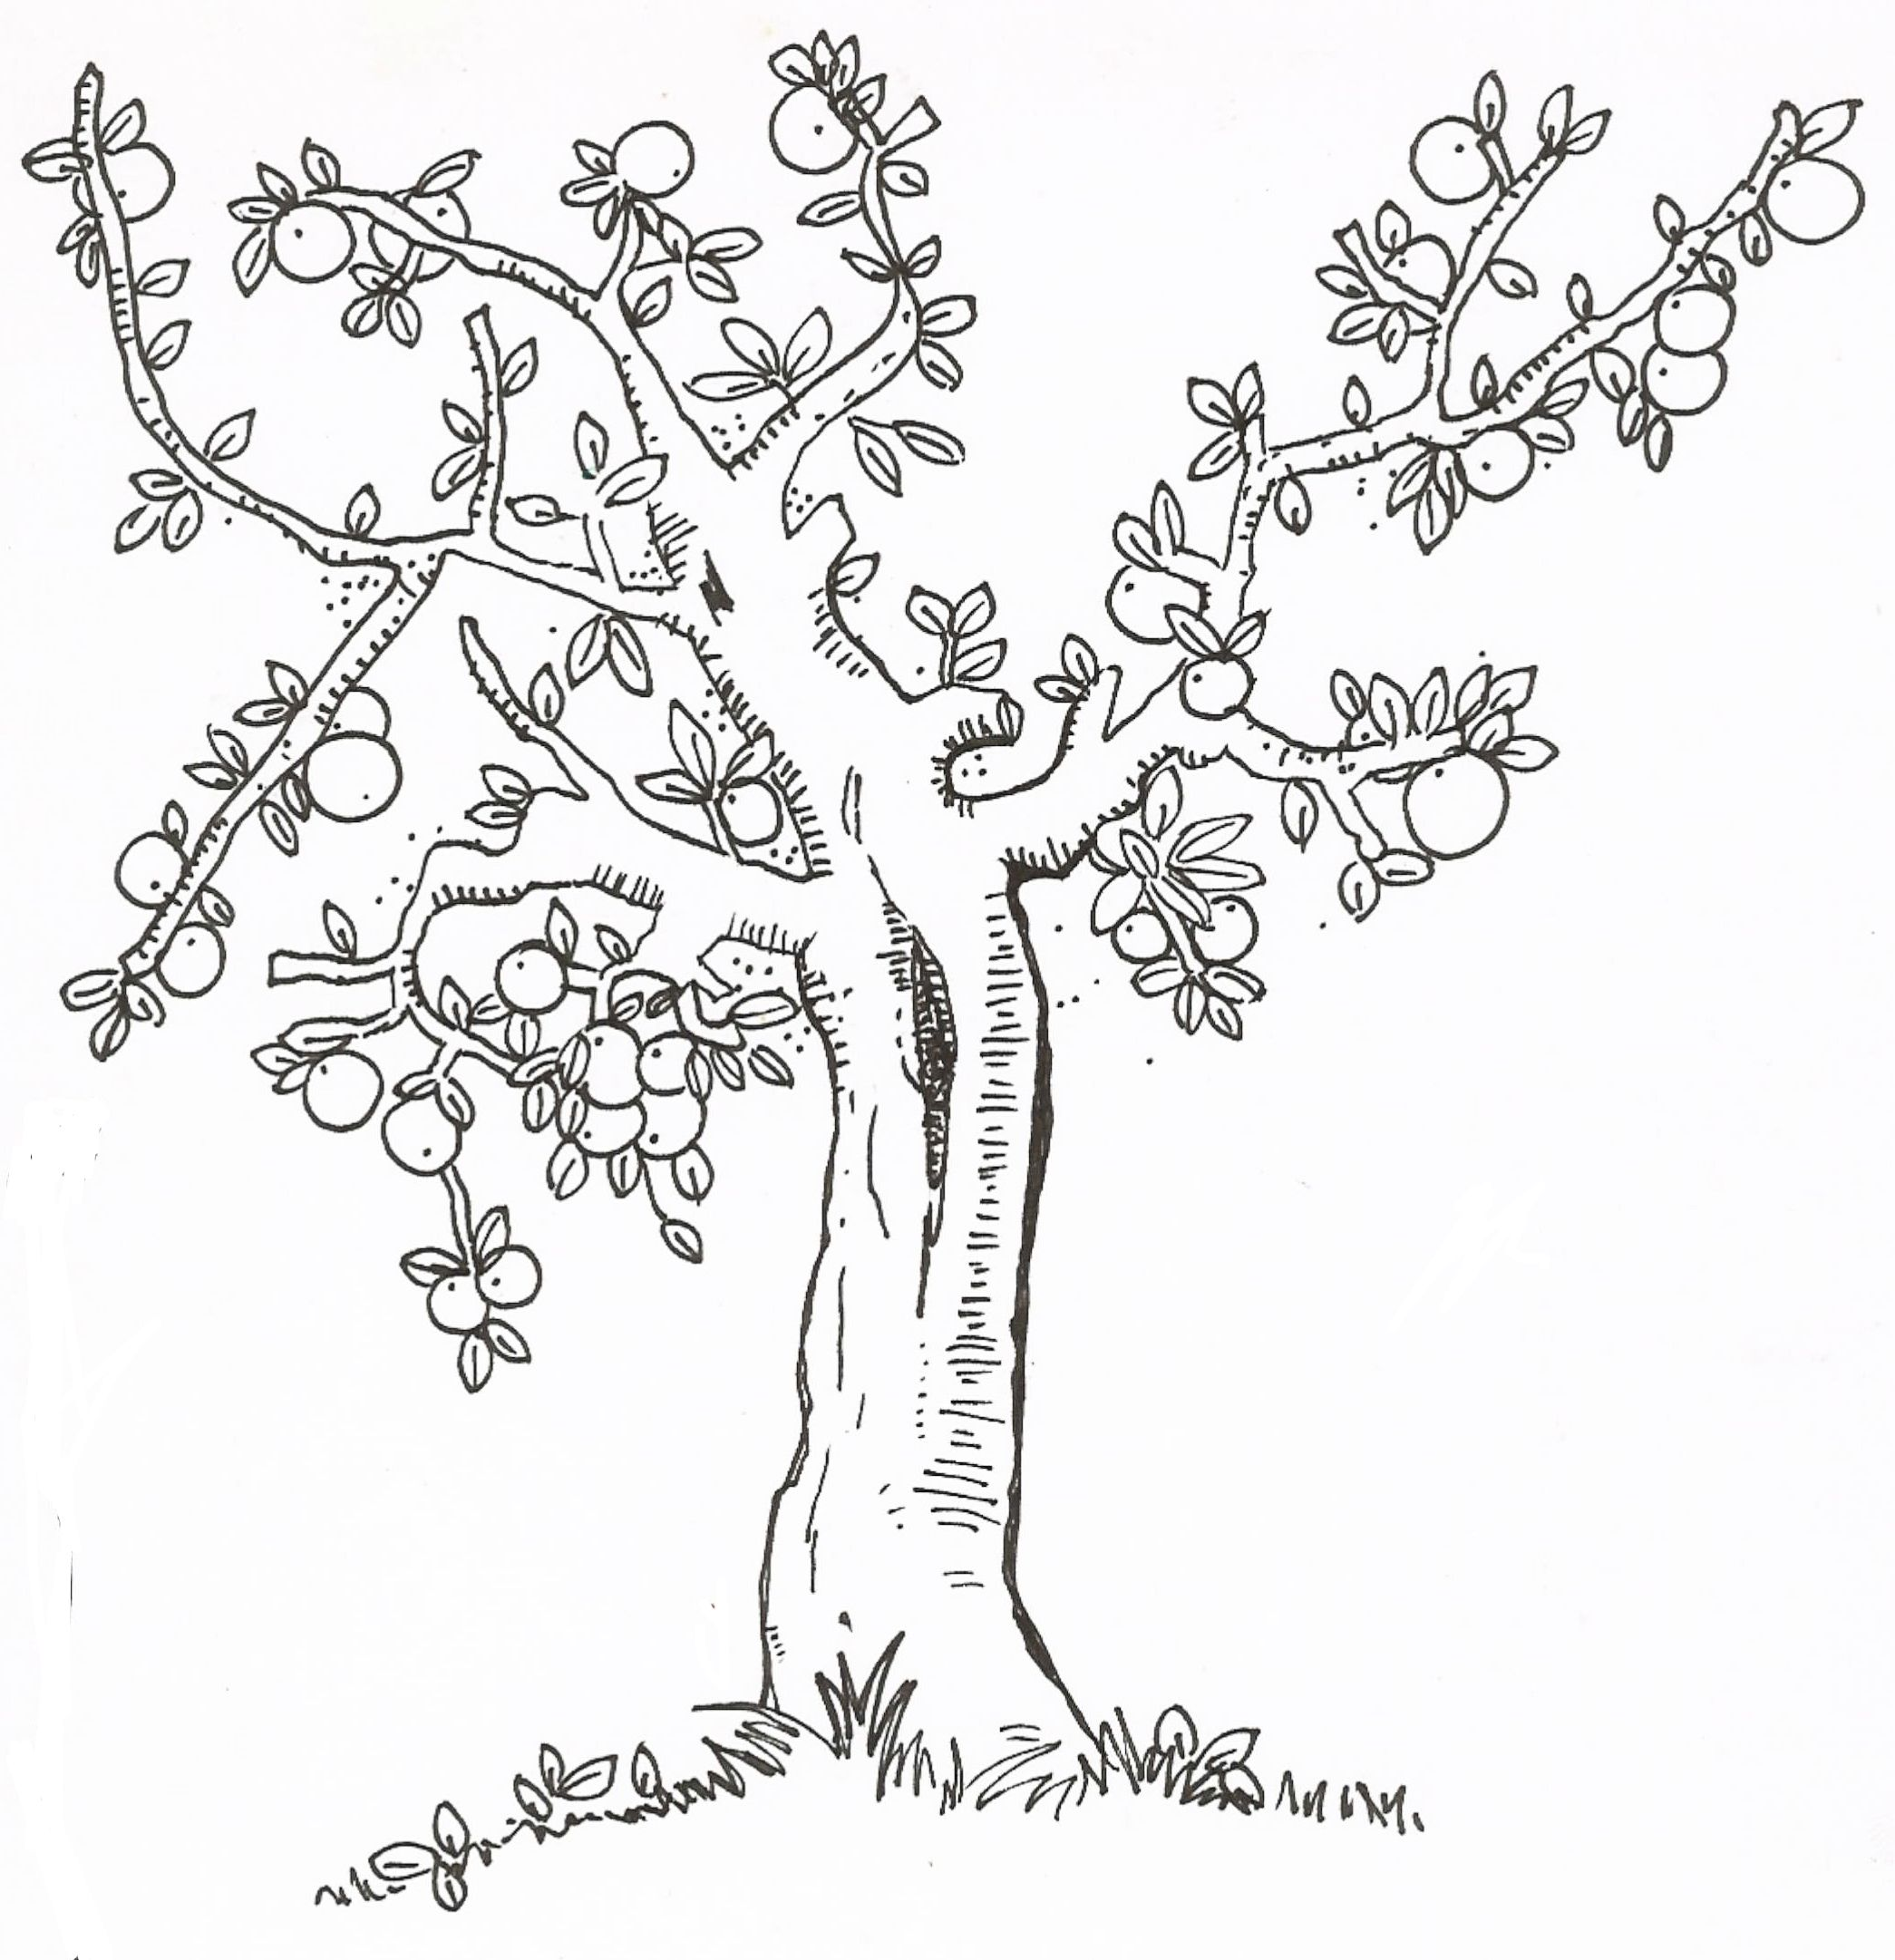 Coloring pictures of flowers and trees - Lesson 10 I Am Thankful For Trees Plants And Flowers I Got This Idea Off